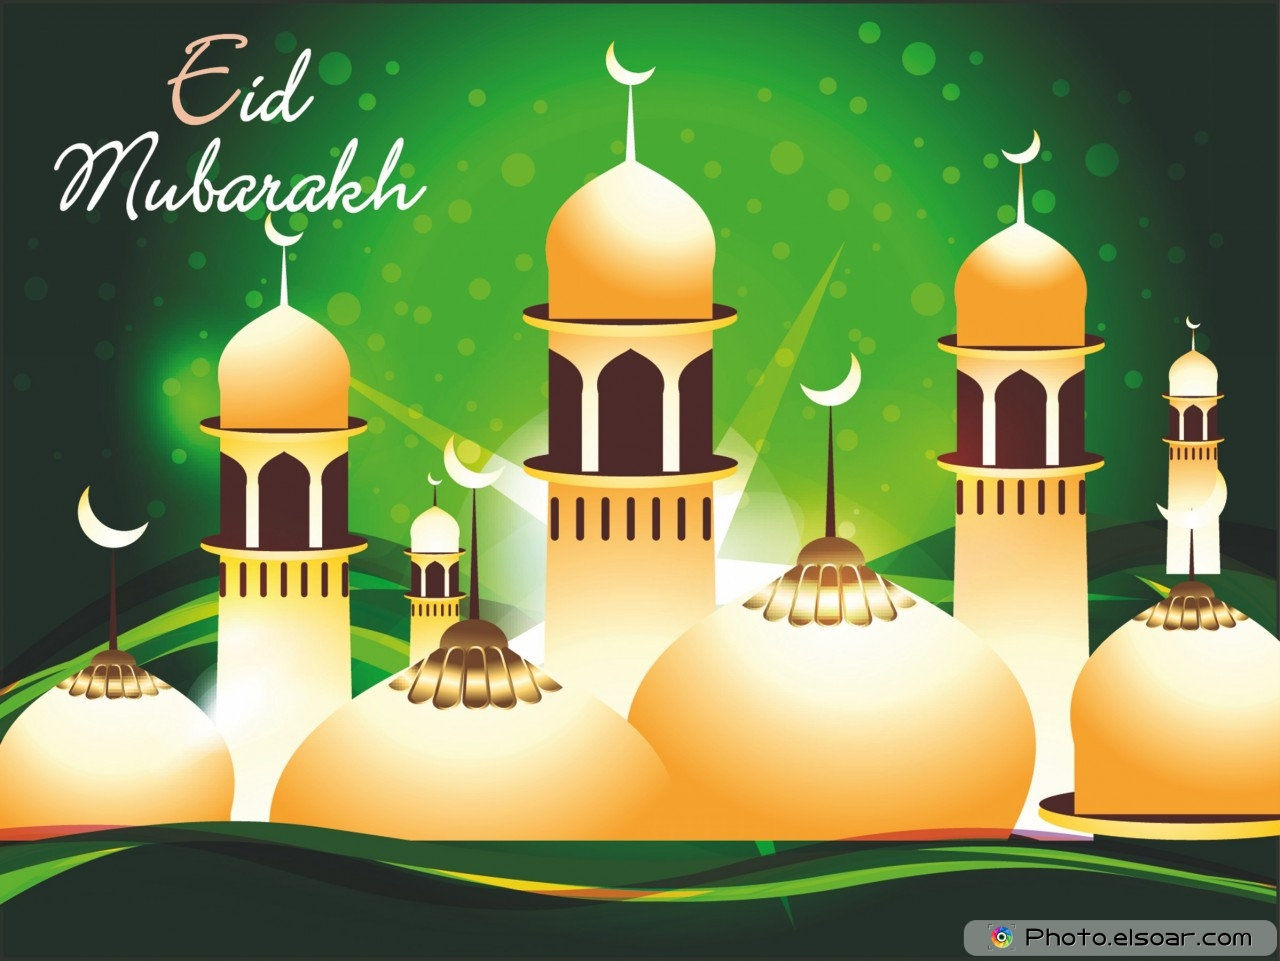 Eid Mubarak Free HD Wallpaper